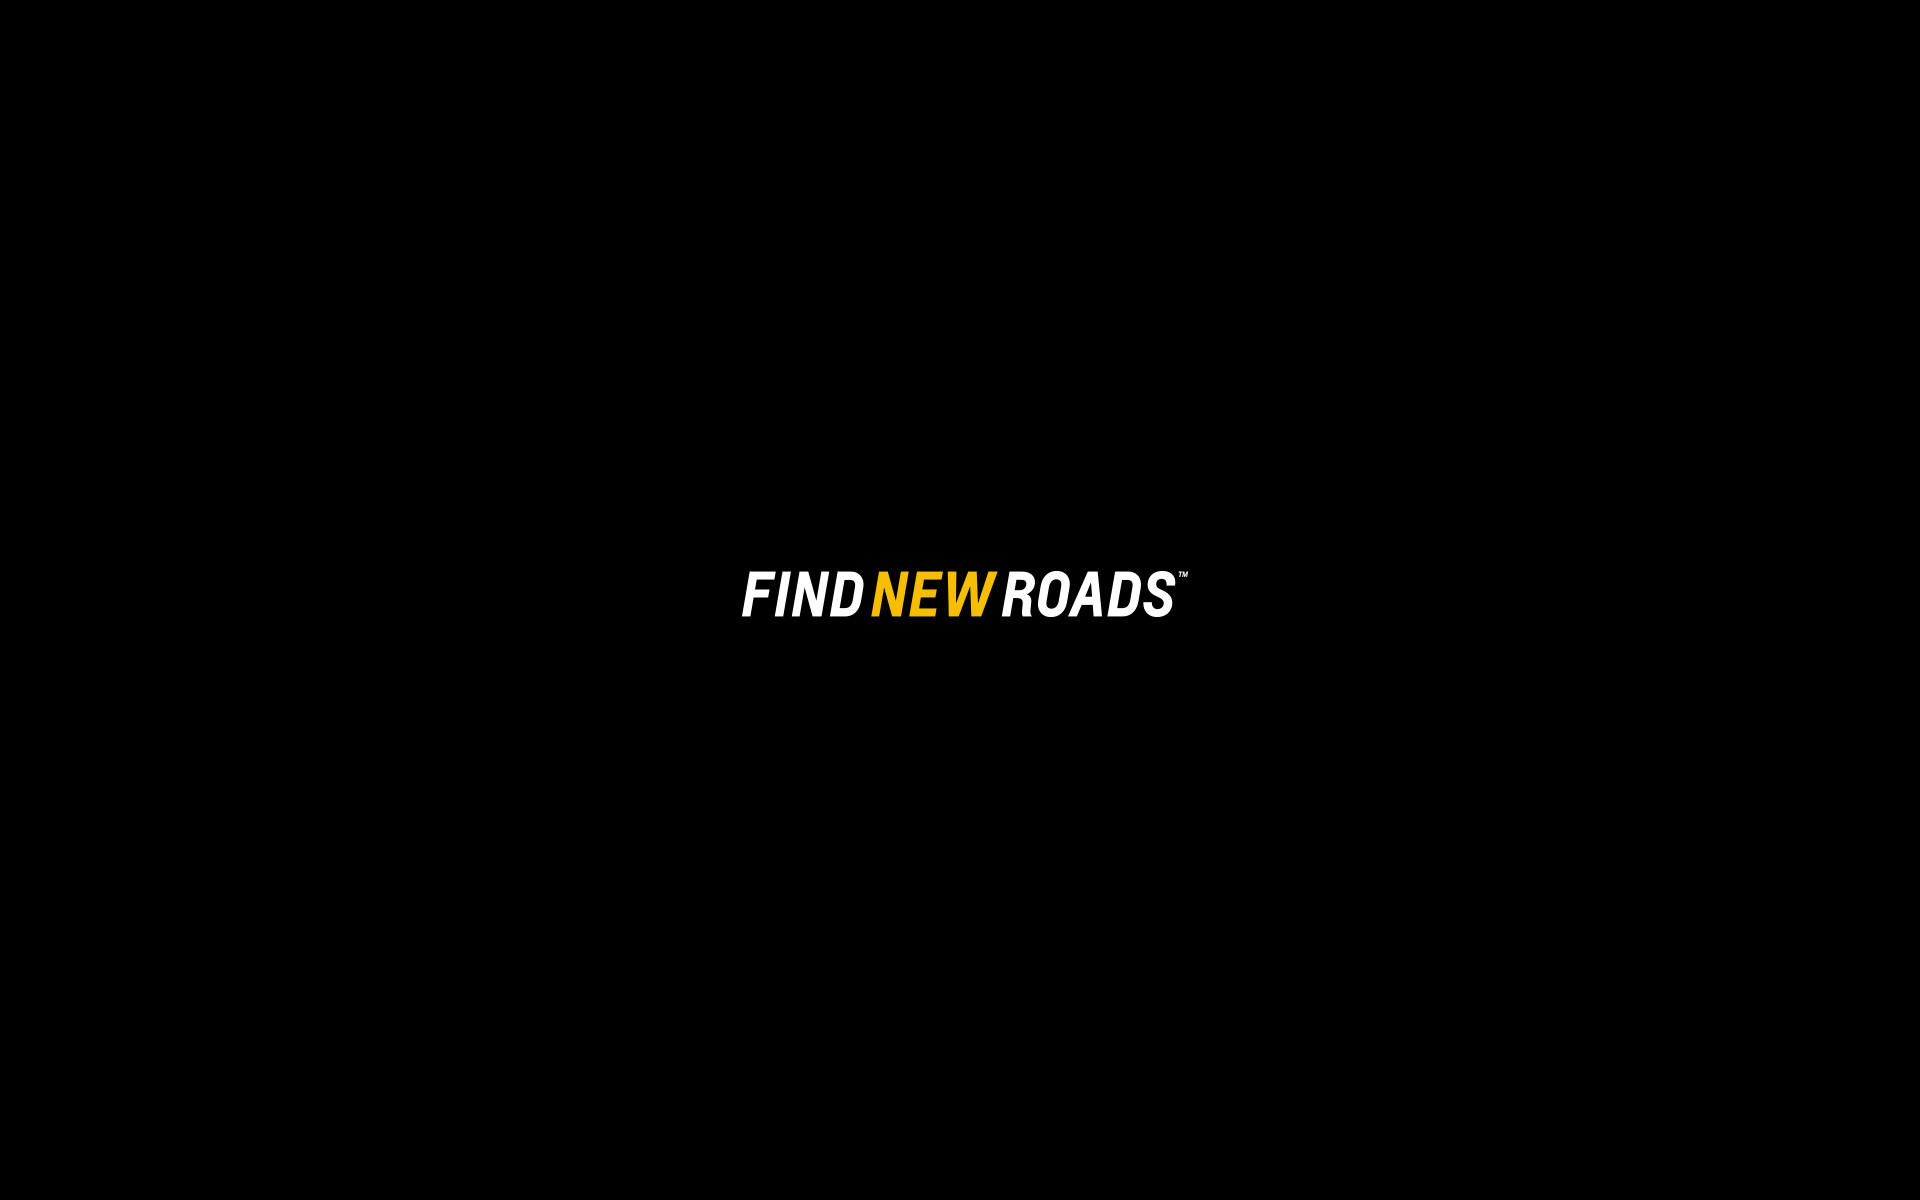 Chevrolet «Find new roads»